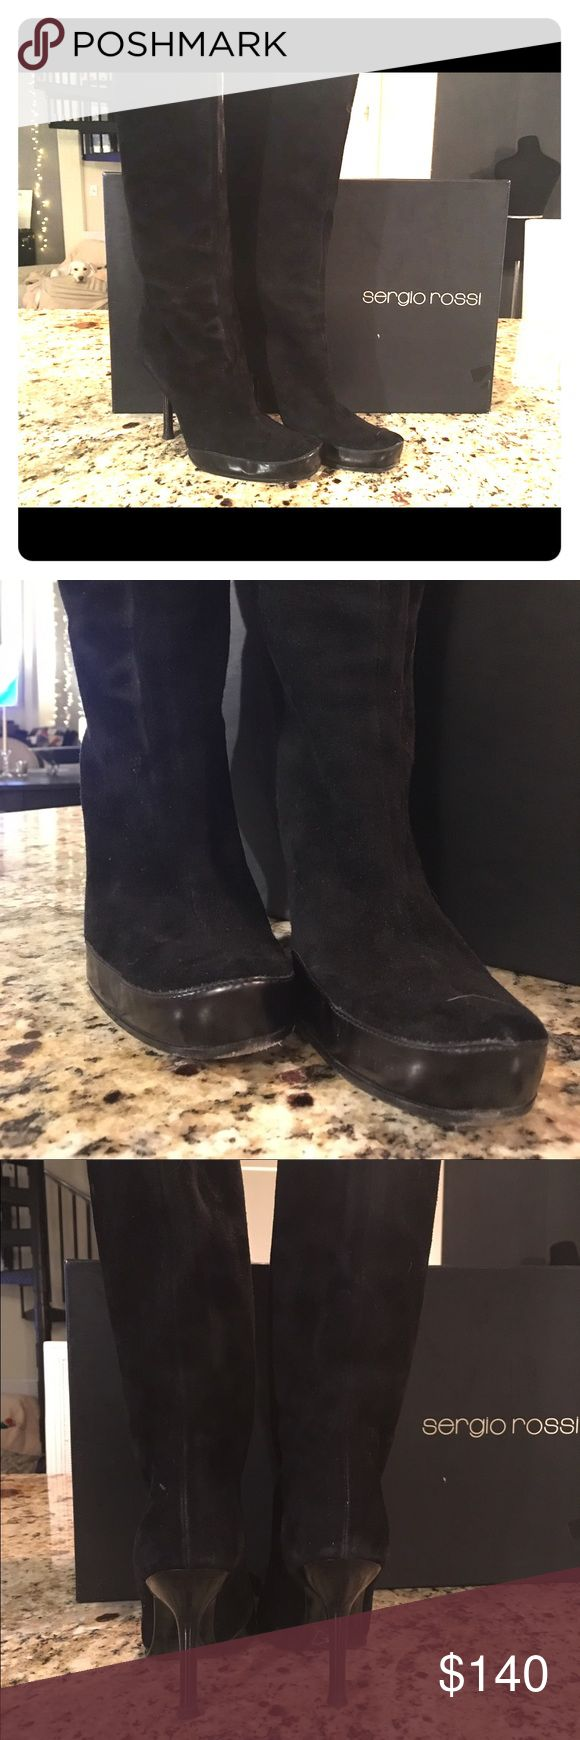 Sergio Rossi Womens Black Suede Mid-Calf Boots 7.5 Beautiful Sergio Rossi Womens Black Suede Mid-Calf Boots Sz 37.5/7.5 Golf Nero Royale 4 inch heel. Pull on mid calf. Barely worn. With Box and tags. Originally purchased at Saks Fifth Avenue for $540.  The is a shiny black leather band around the base of the front of the boot. This area is not scuffed it is the glare shine in the picture. I can email more pics if needed. Former stylist cleaning out my closet. Perfect with skirts, slacks or…